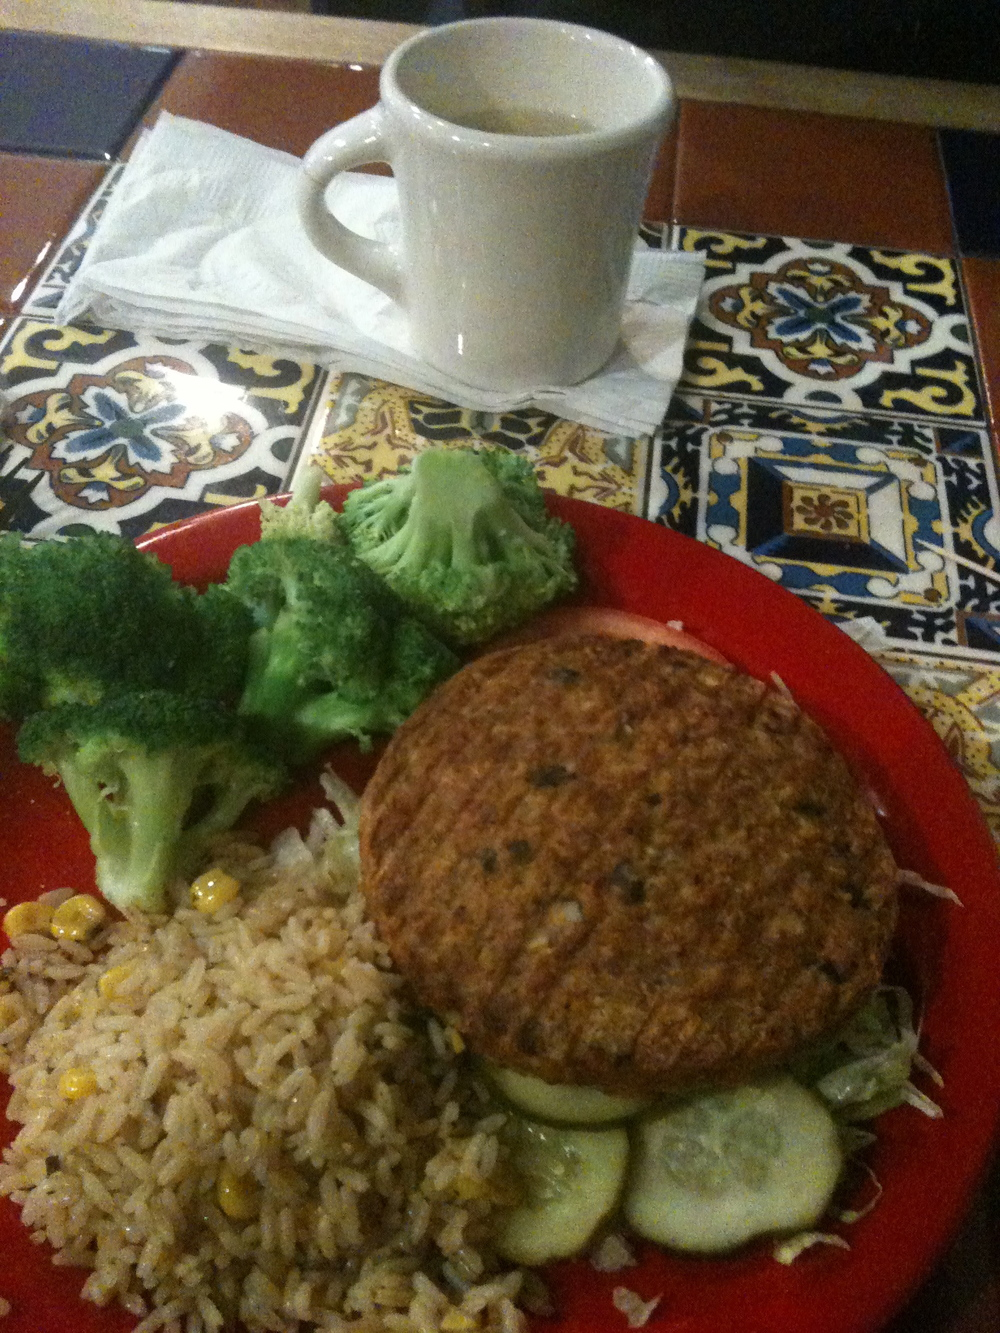 Vegan and gluten-free meal at Dallas Aiport